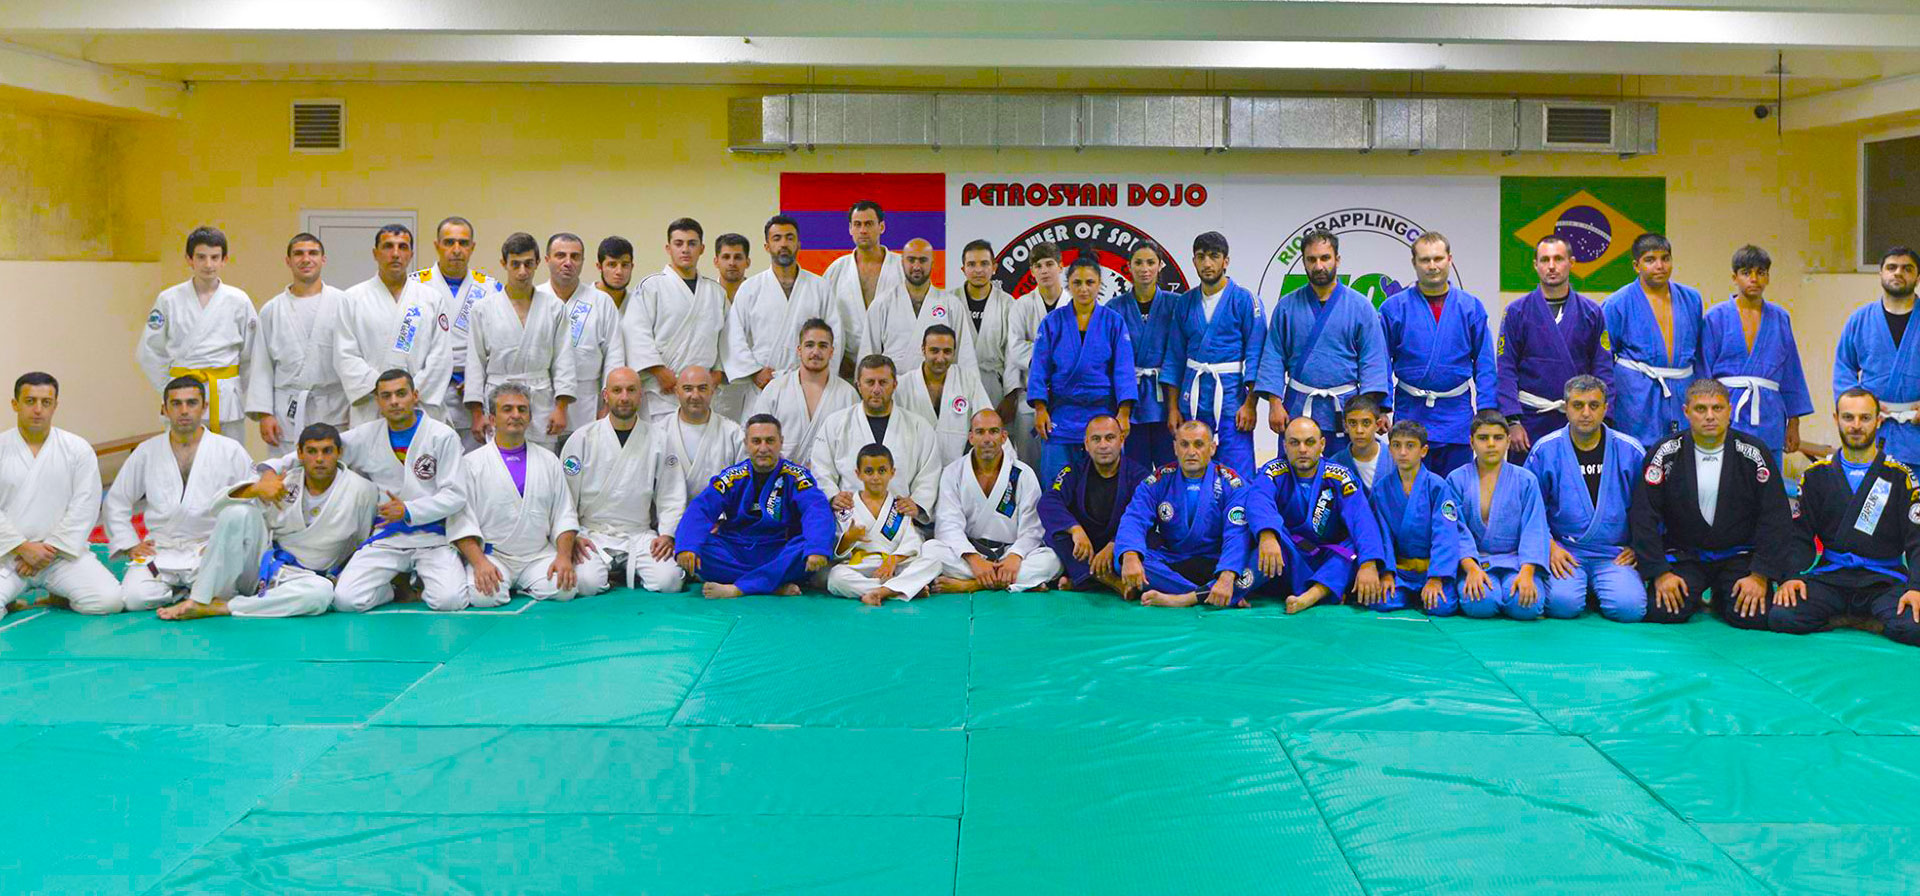 Rio-Grappling-Club-Armenia